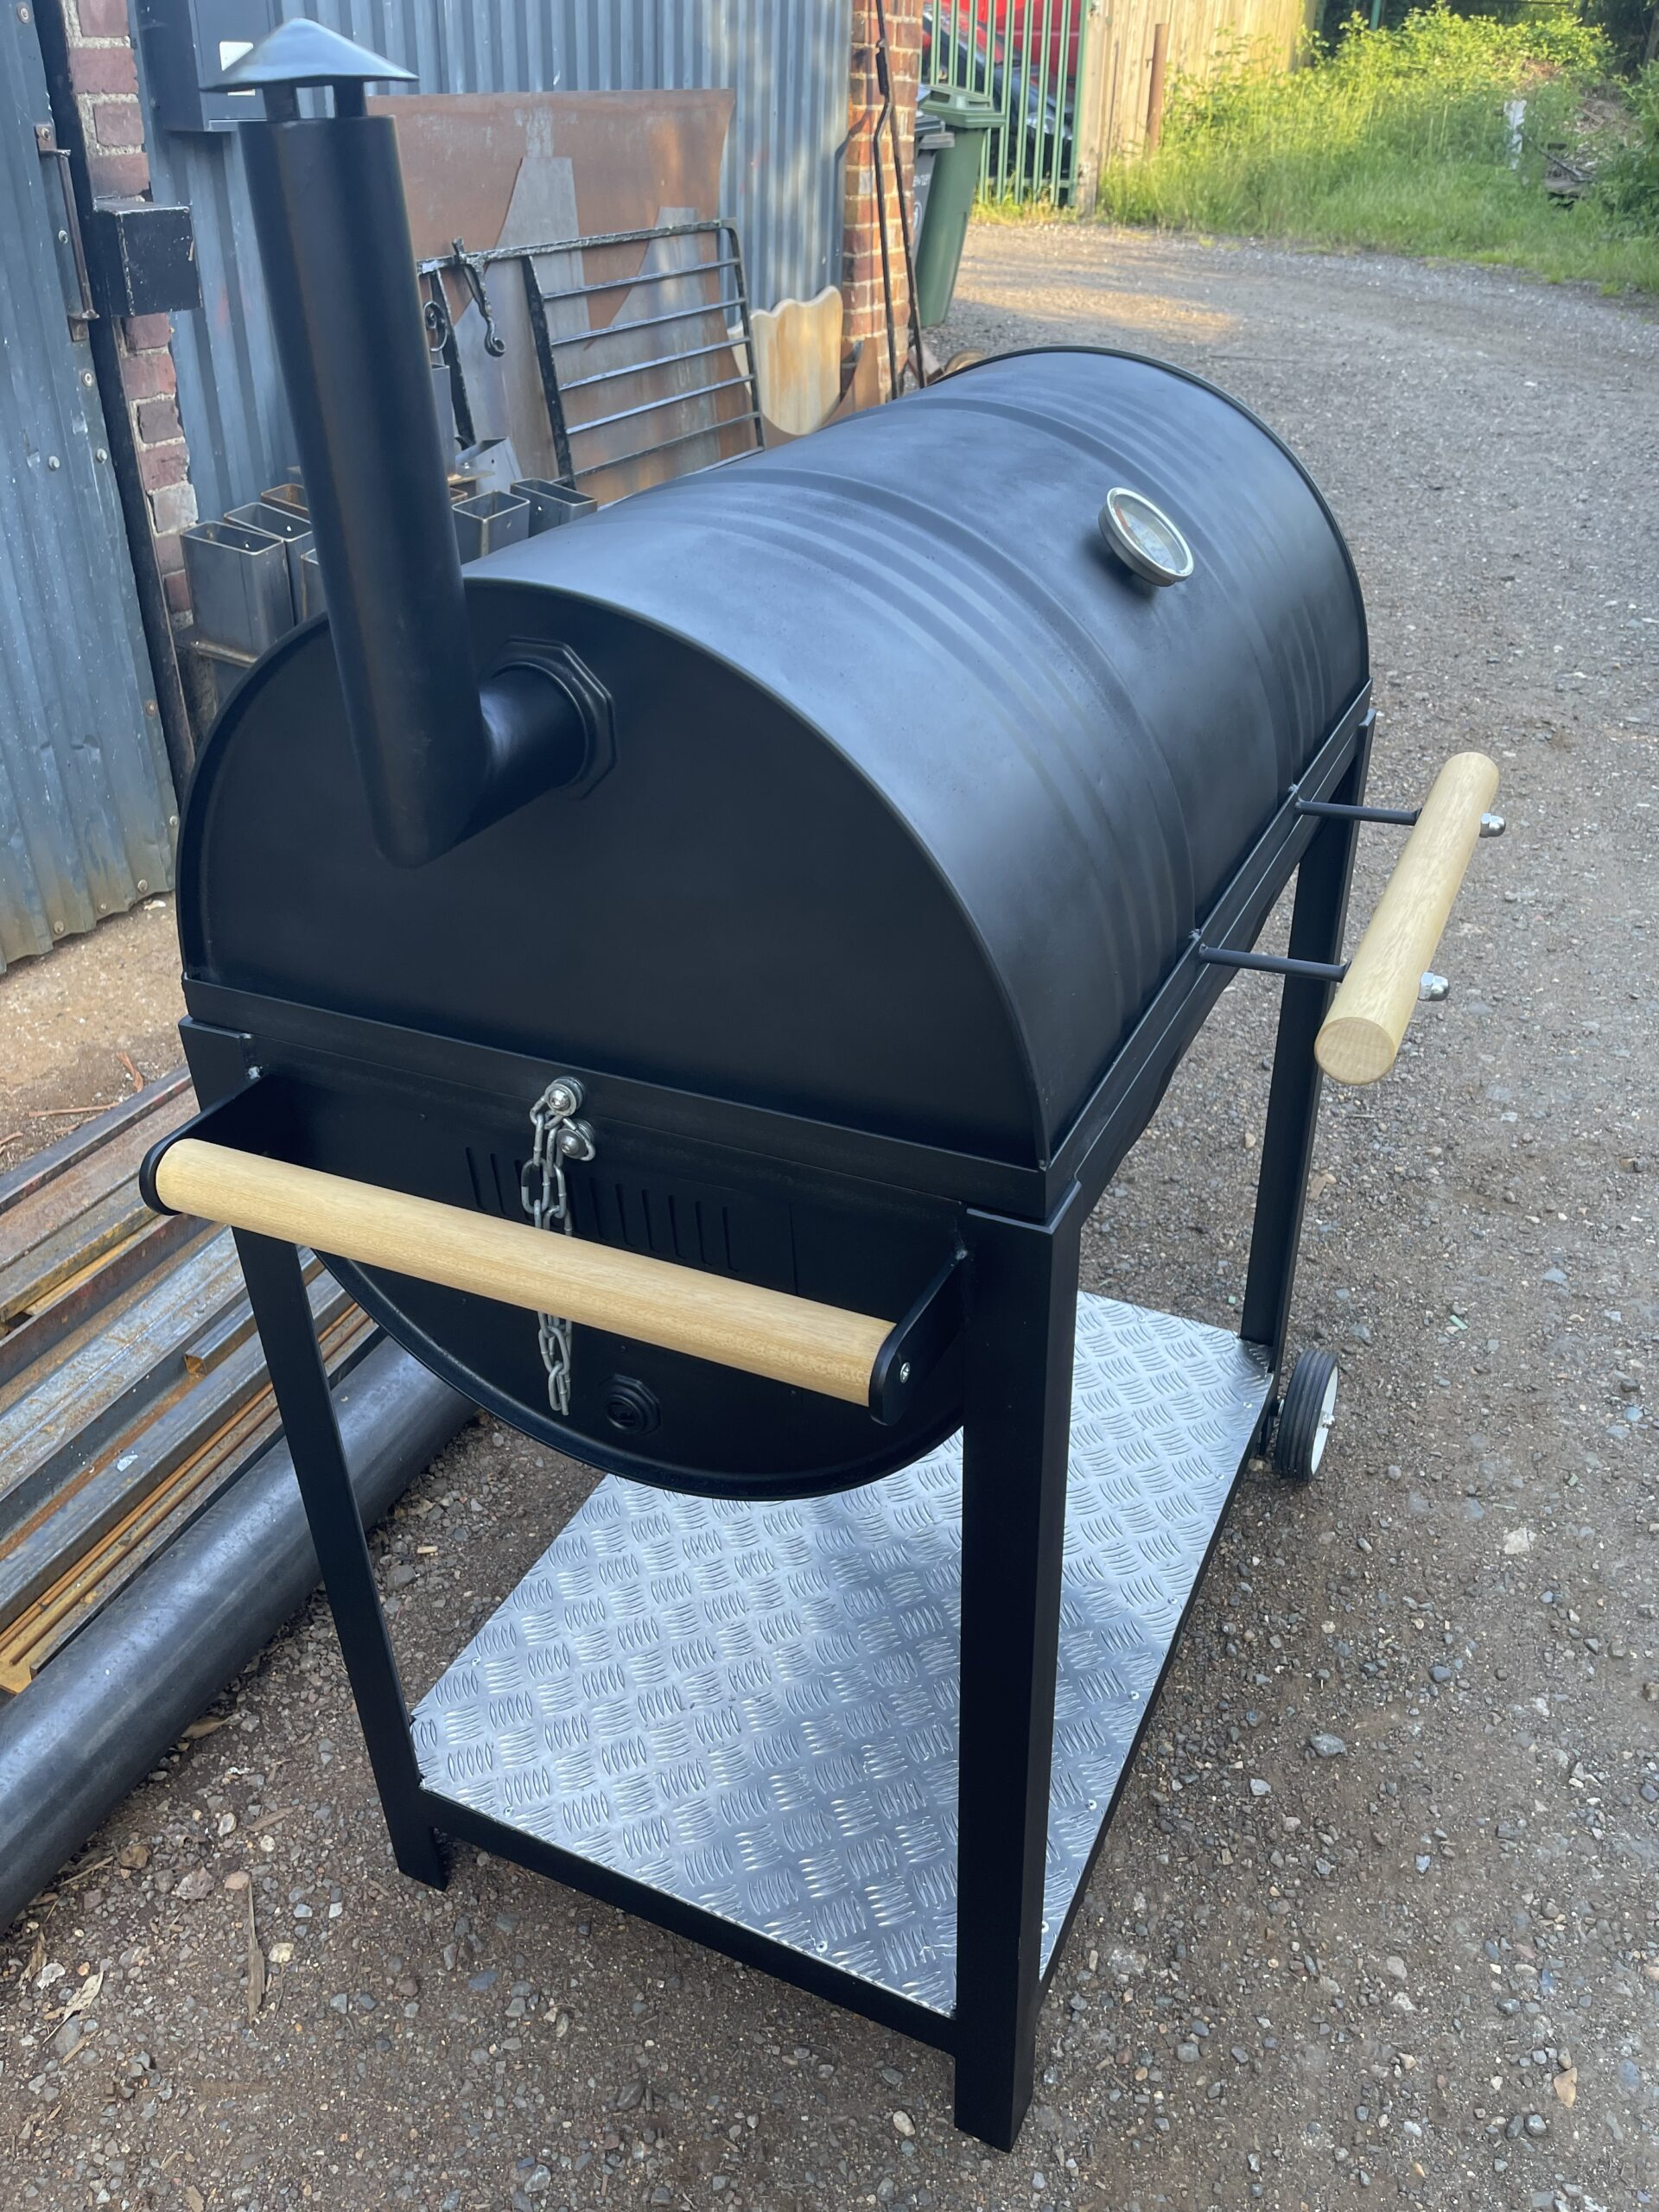 Traditional Barbeque